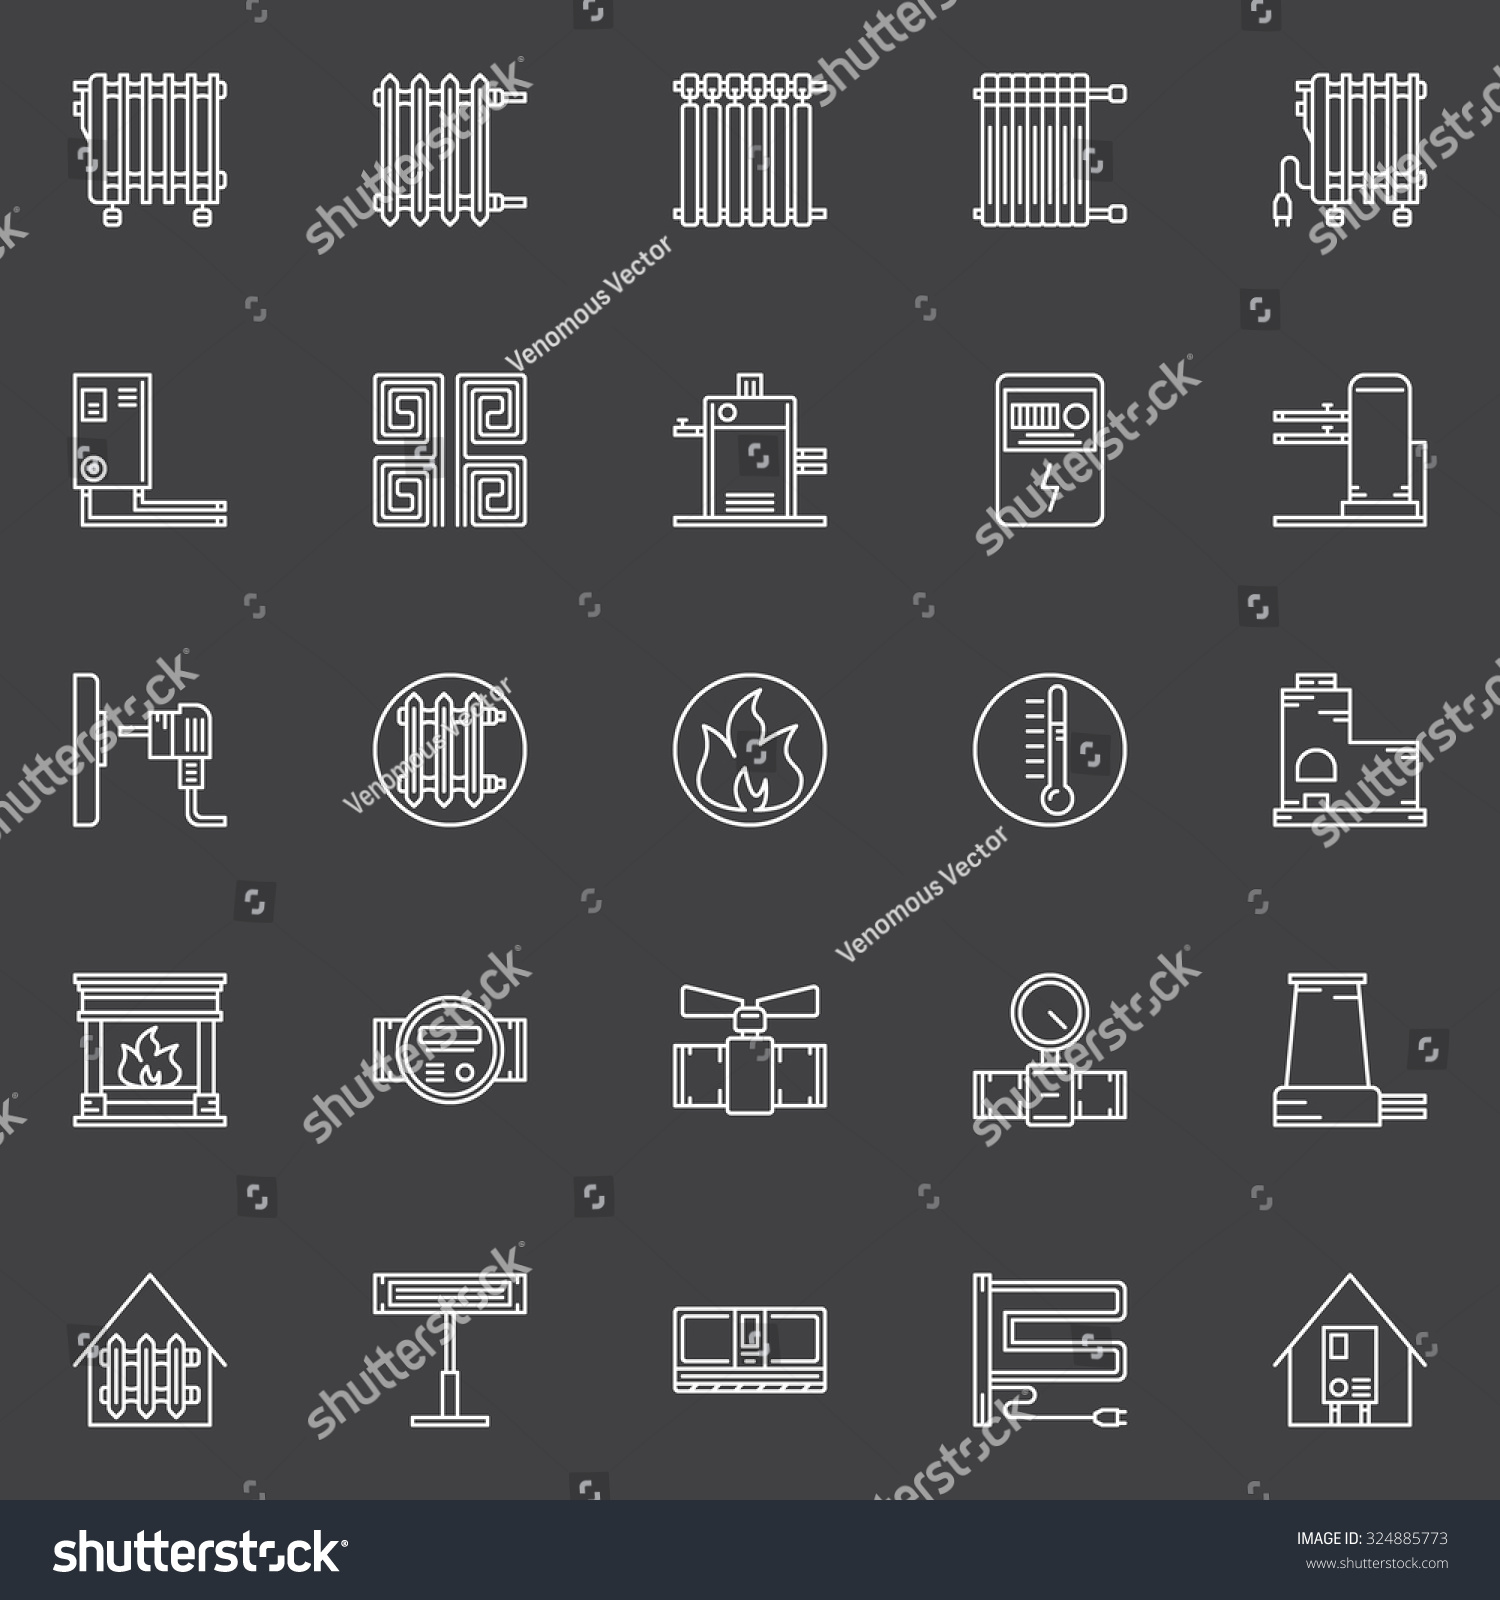 showing post media for heating furnace symbol symbolsnet com heating furnace symbol stock vector heating icons vector set of linear home heating symbols furnaces